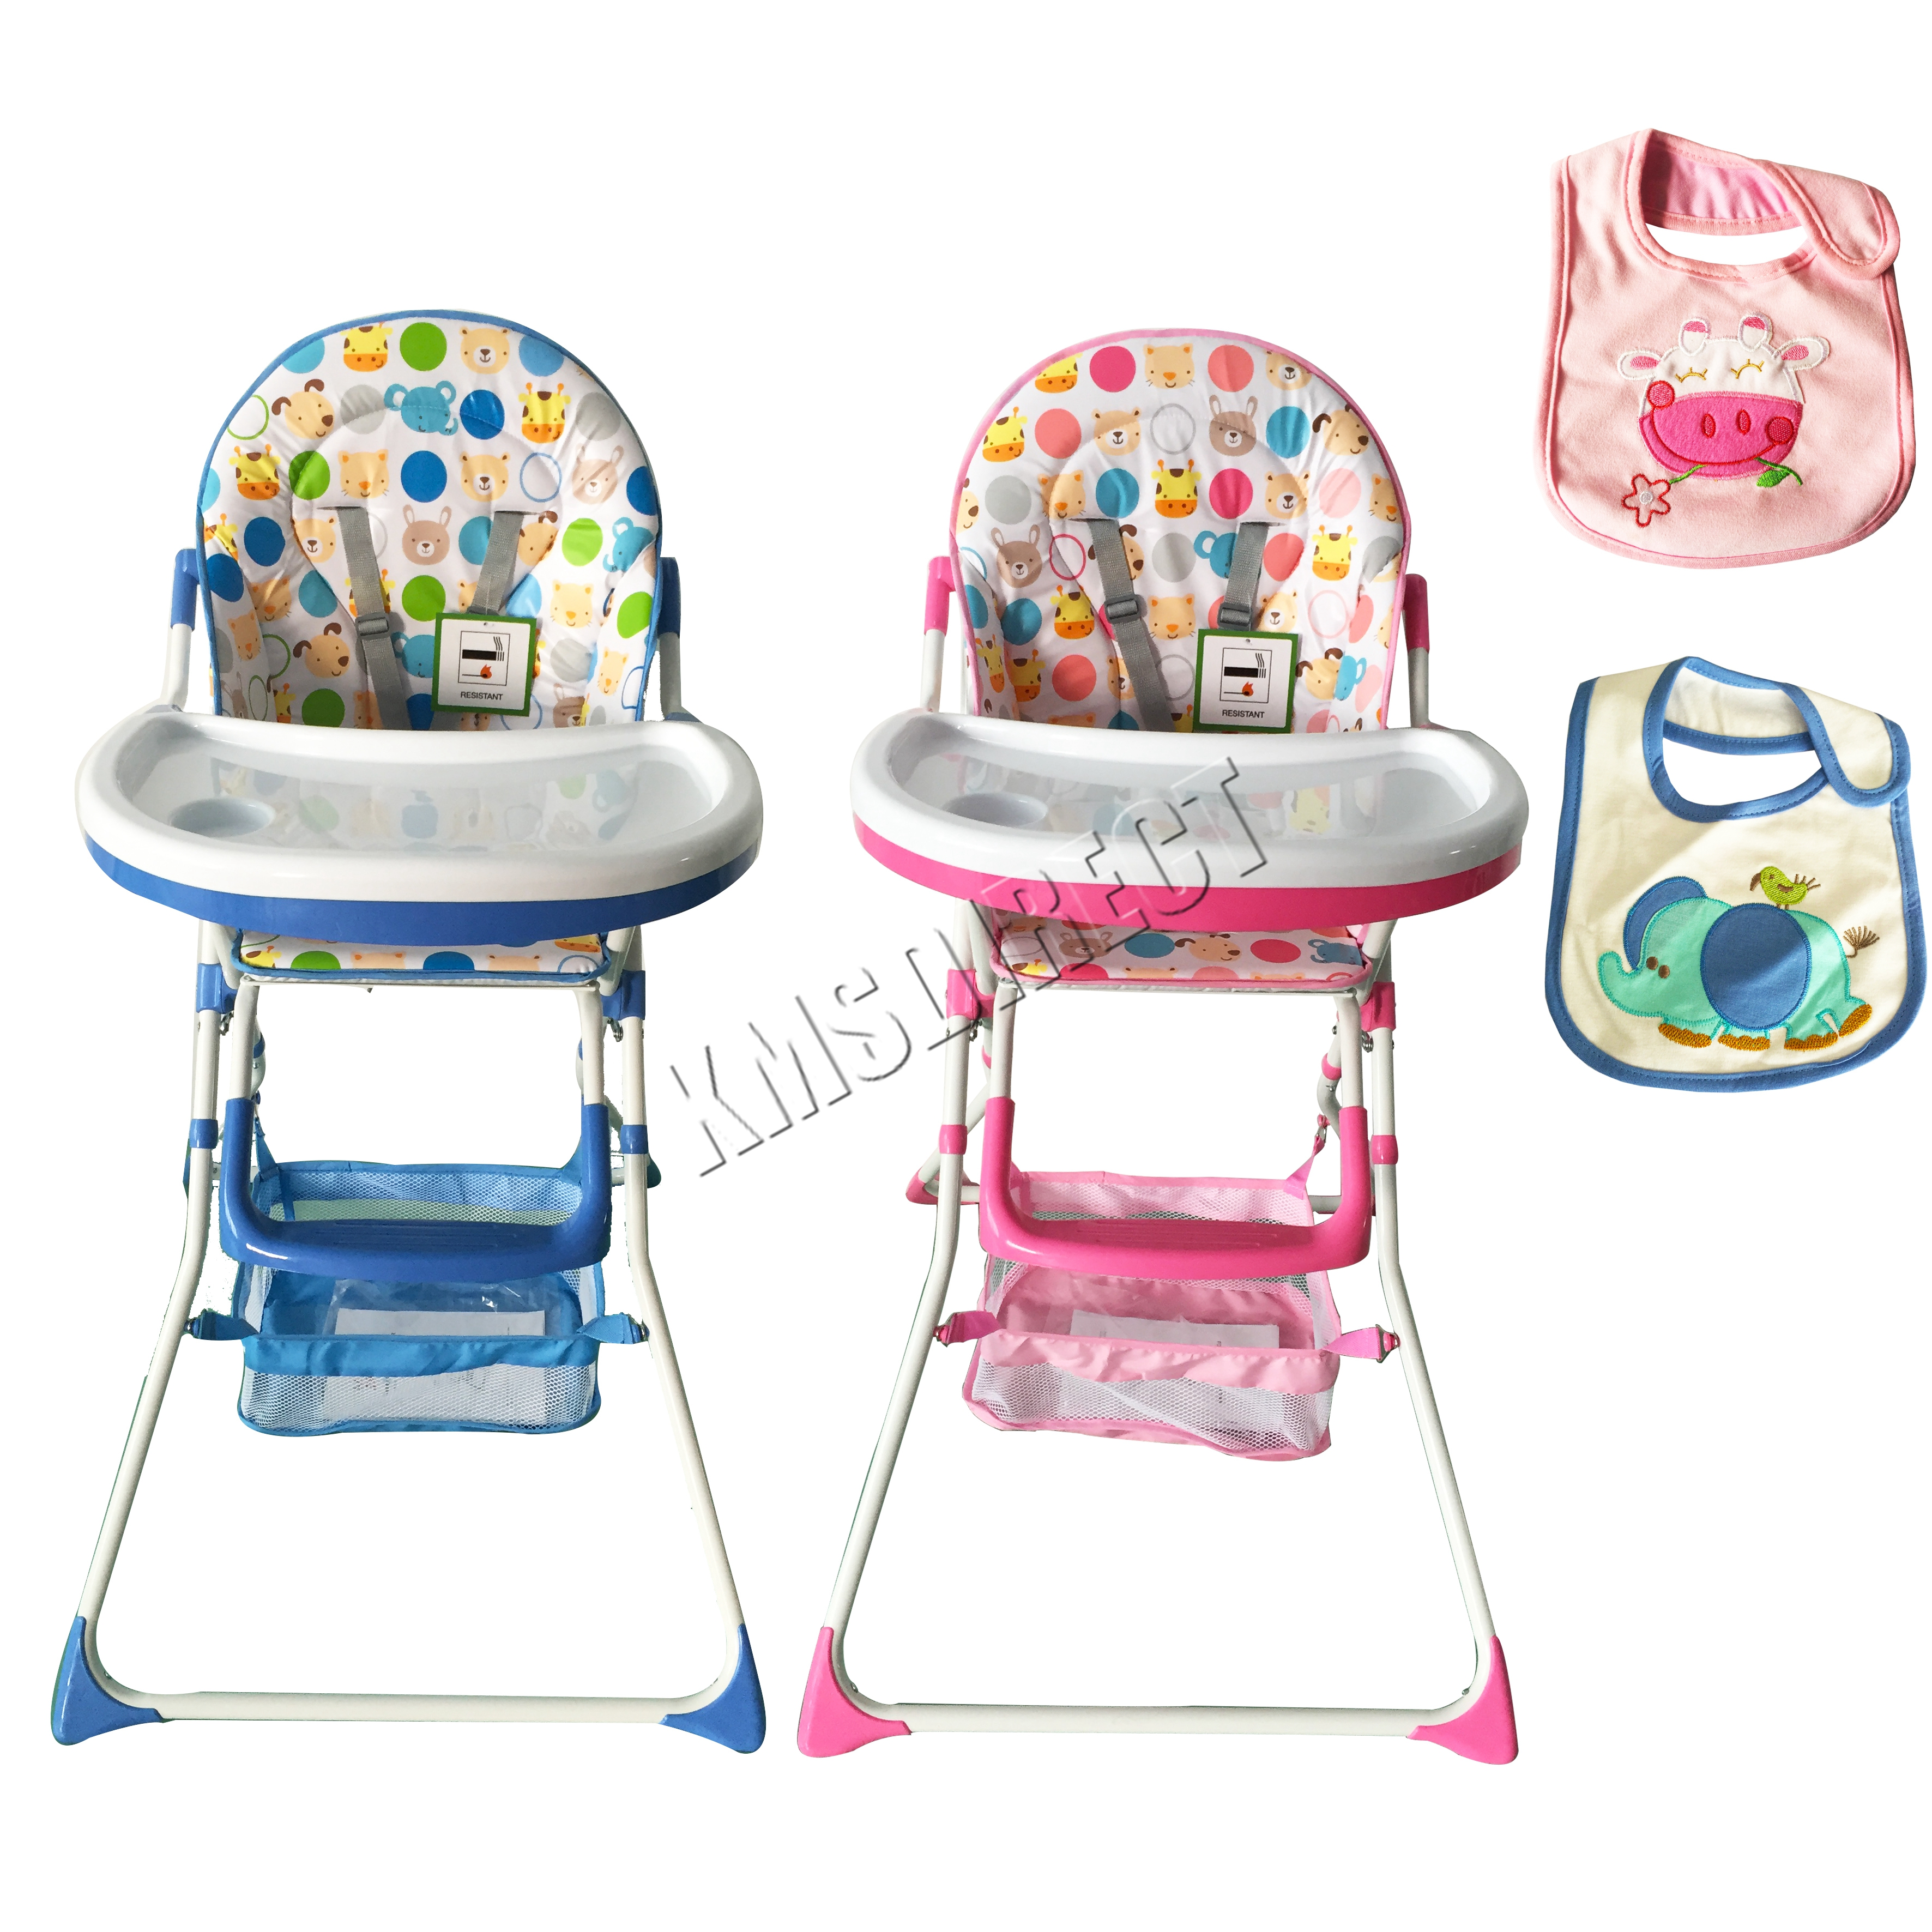 baby high chair for eating wwe toys ladders chairs and tables foxhunter portable infant child folding